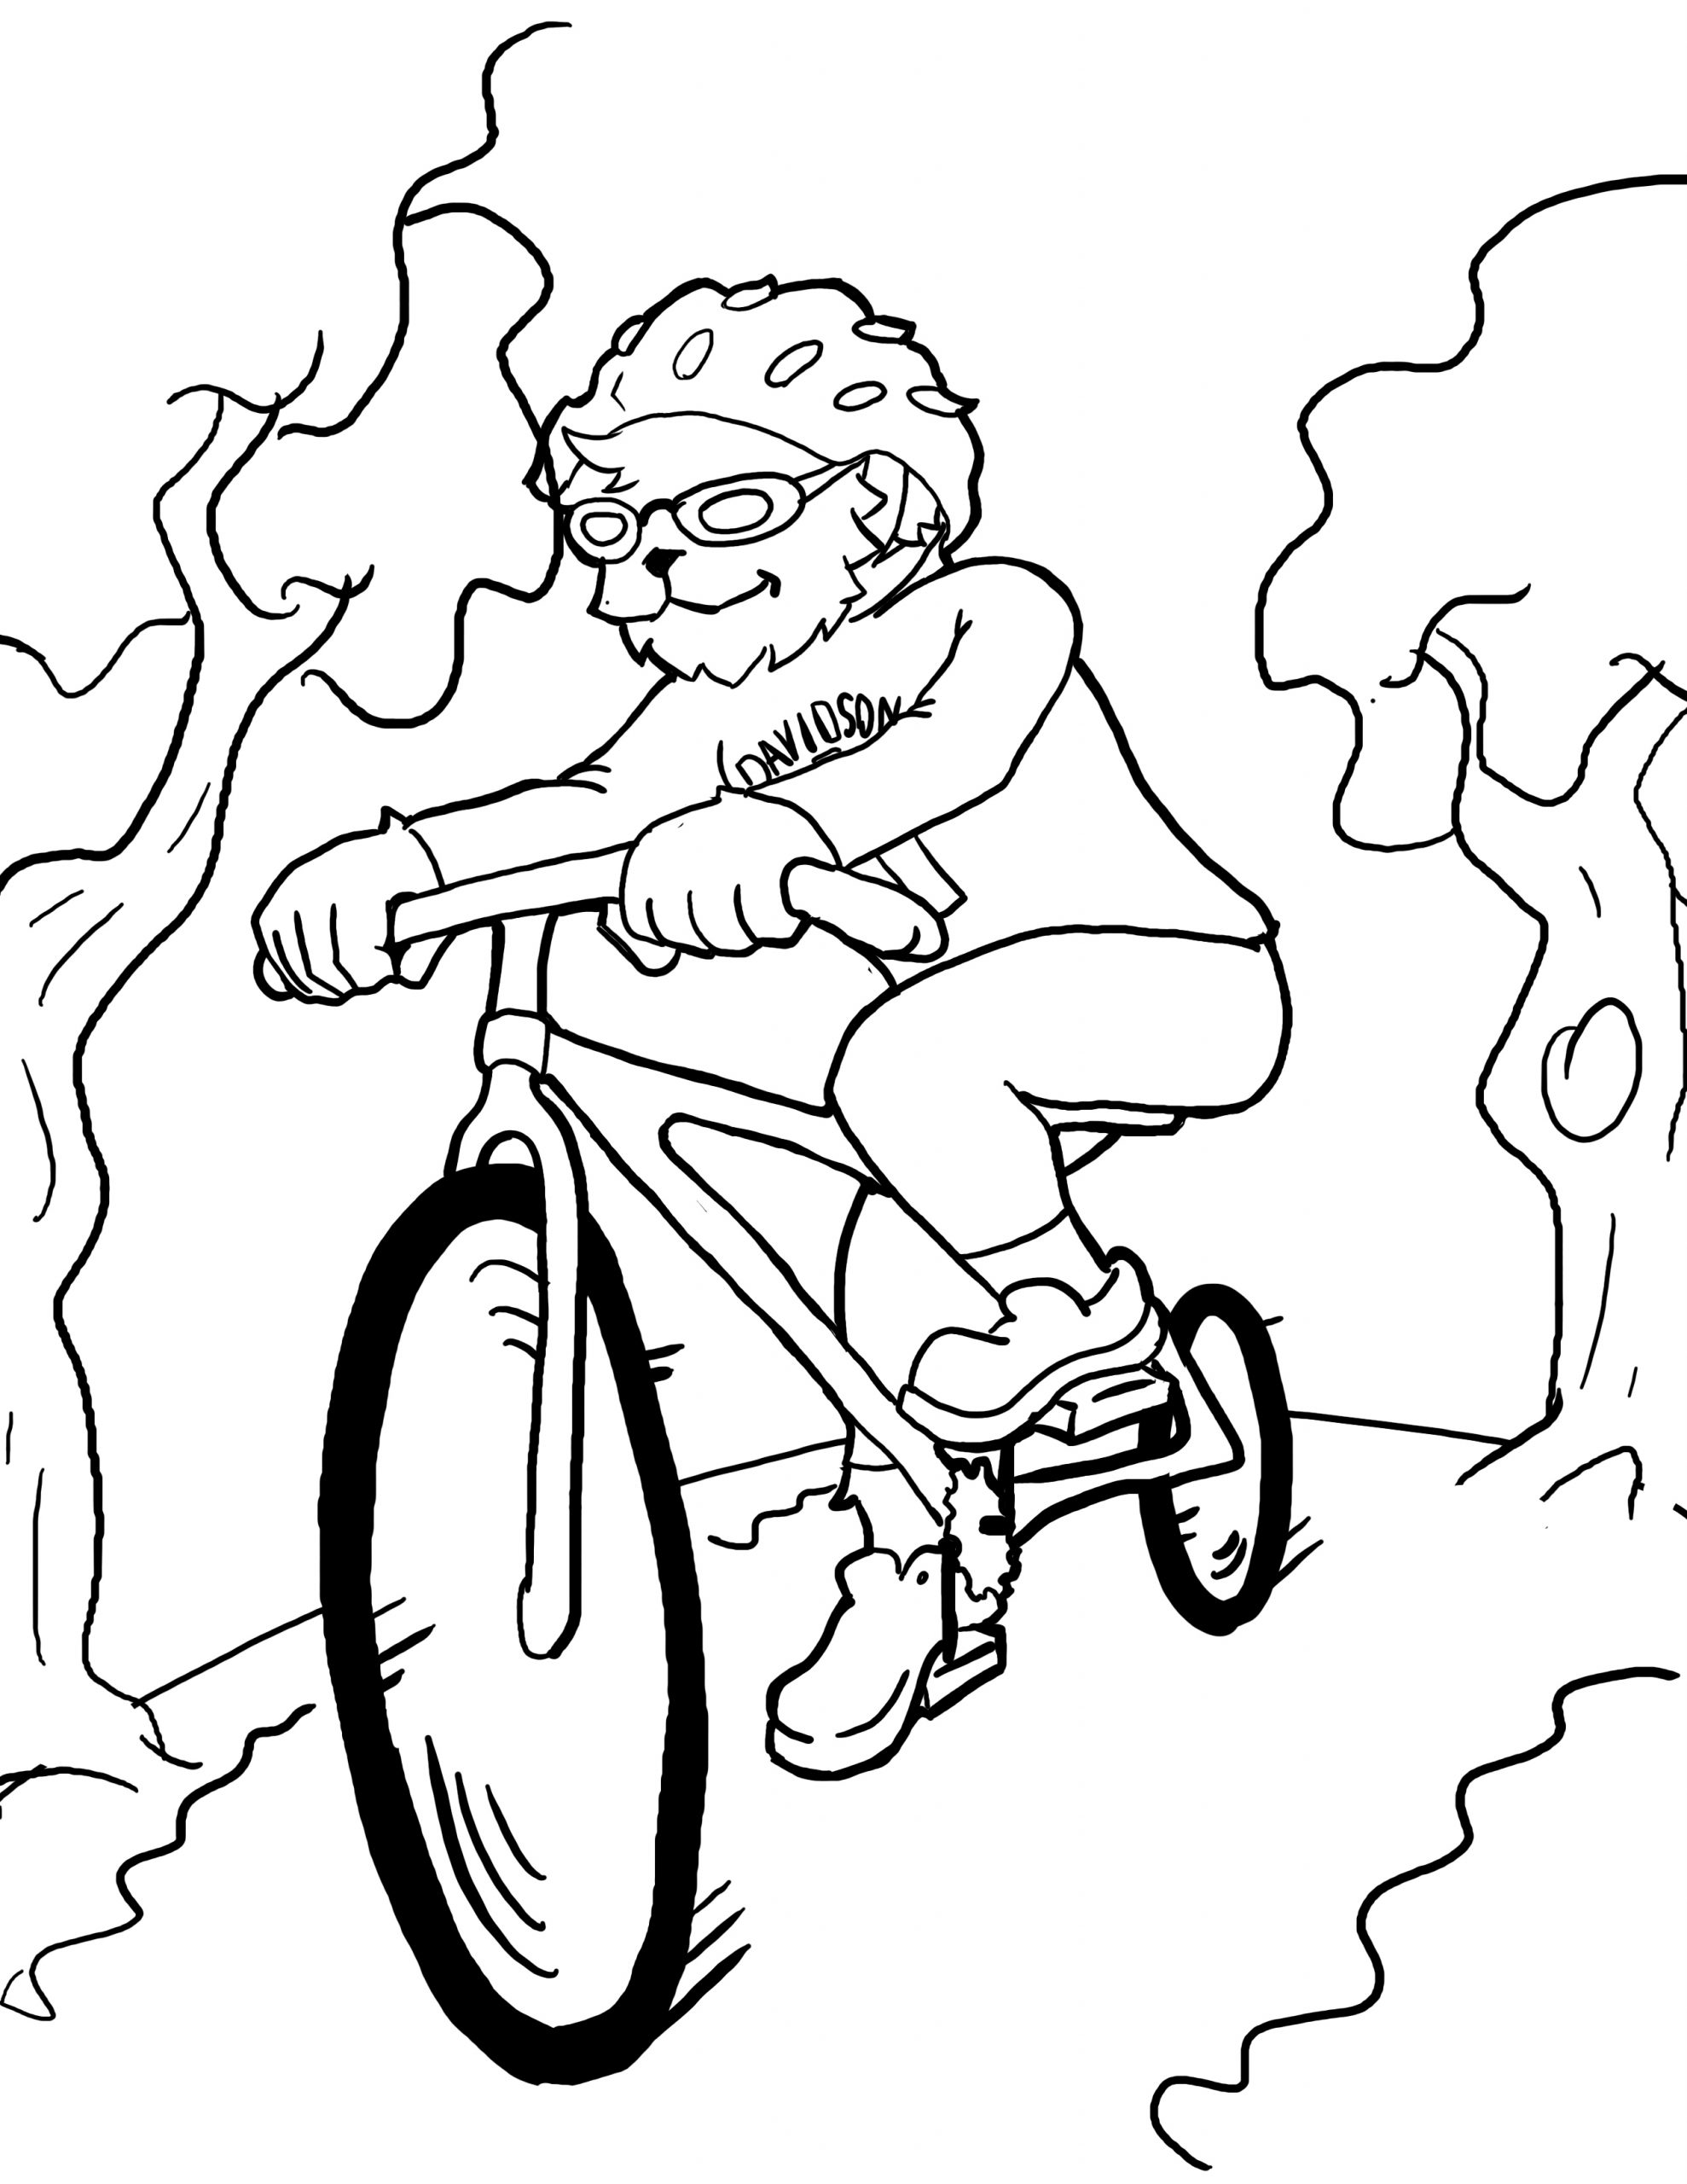 Lux Riding His Bike Coloring Page